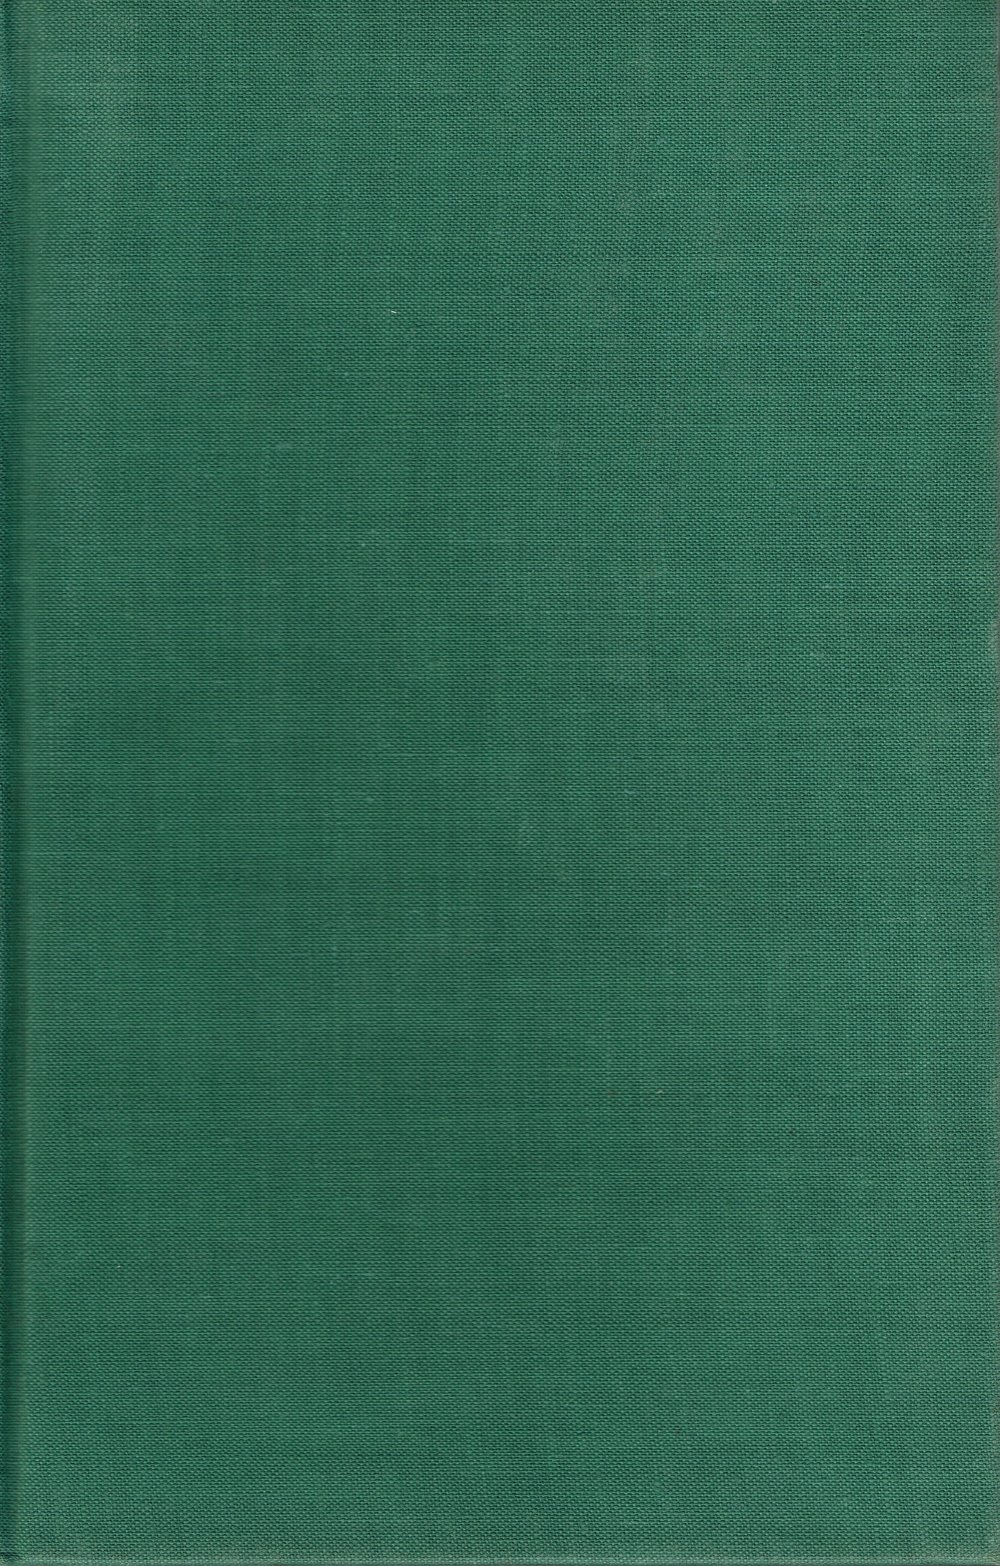 Canberra : A nation's capital Edited by H. L. White